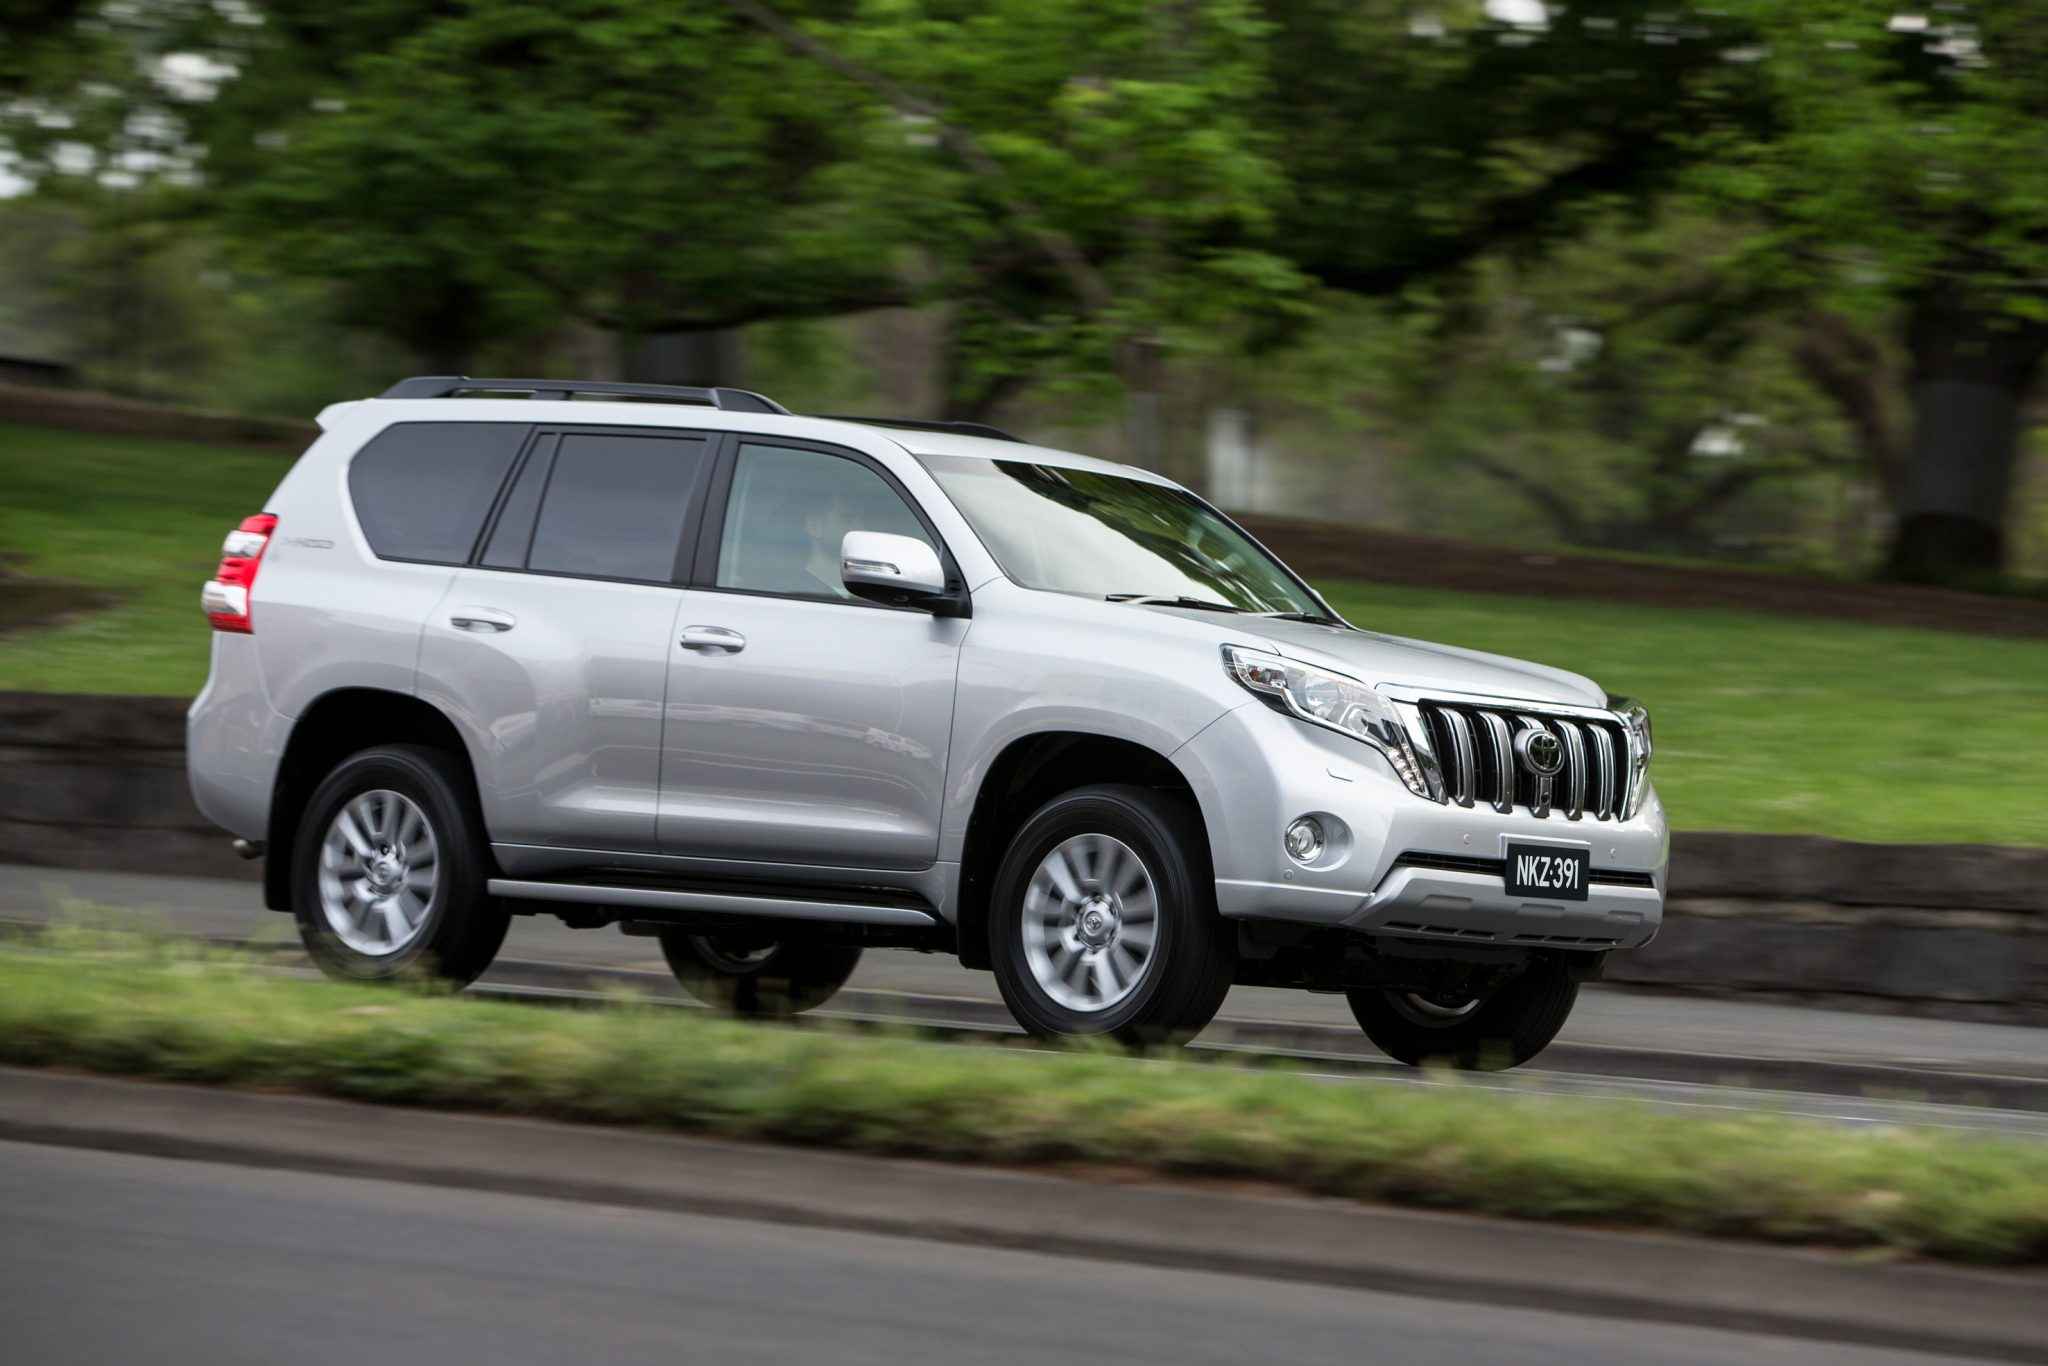 Toyota Cars News Landcruiser Prado Gains Improved